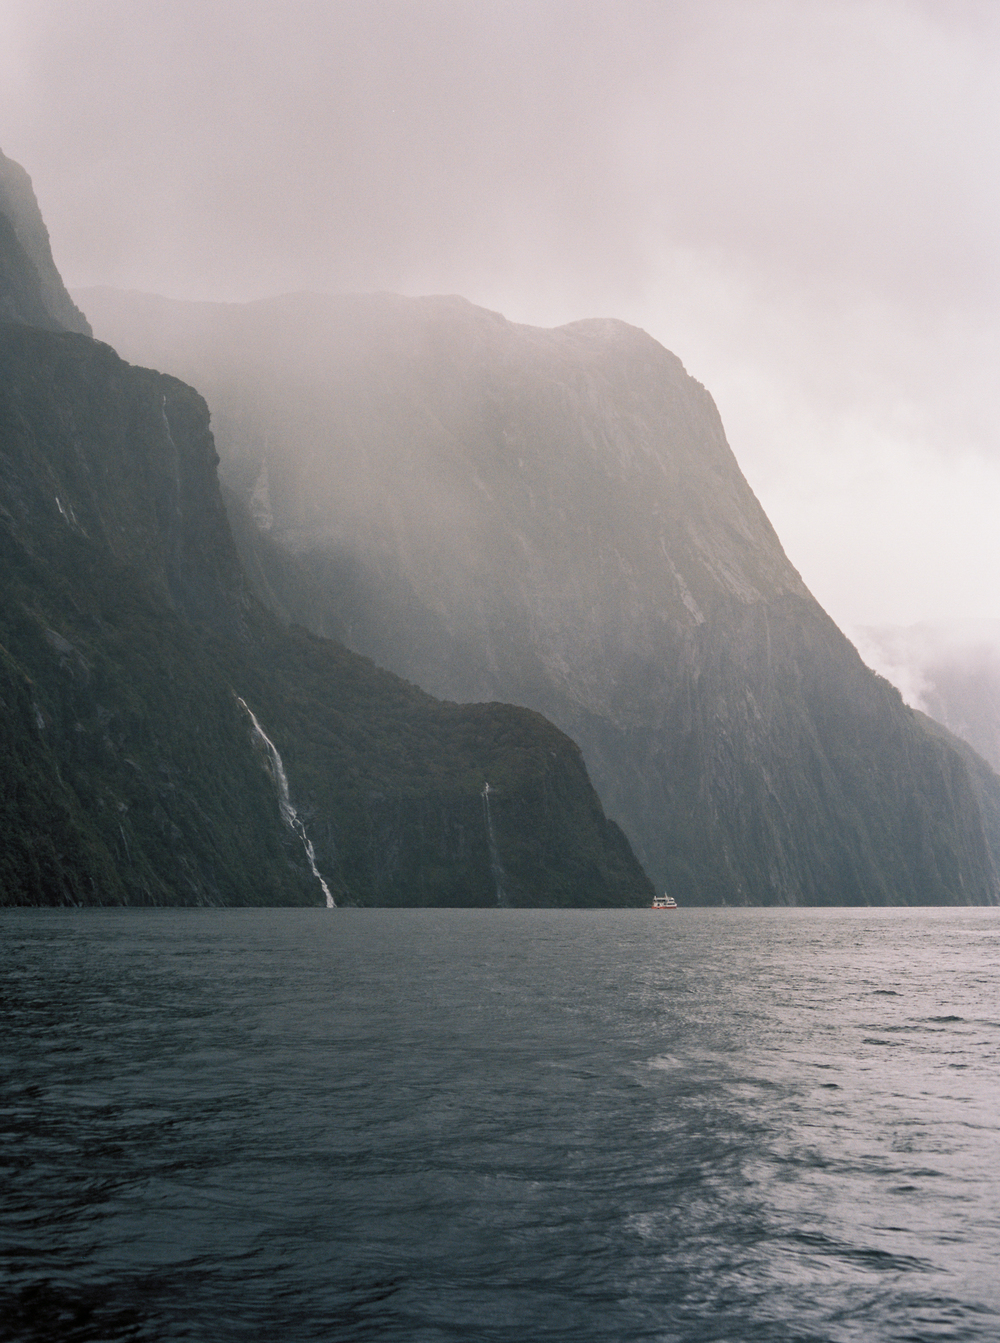 reid_lambshead_when_he_found_her_contax645_fuji400h_milford_sound_new_zealand__photovisionprints.jpg